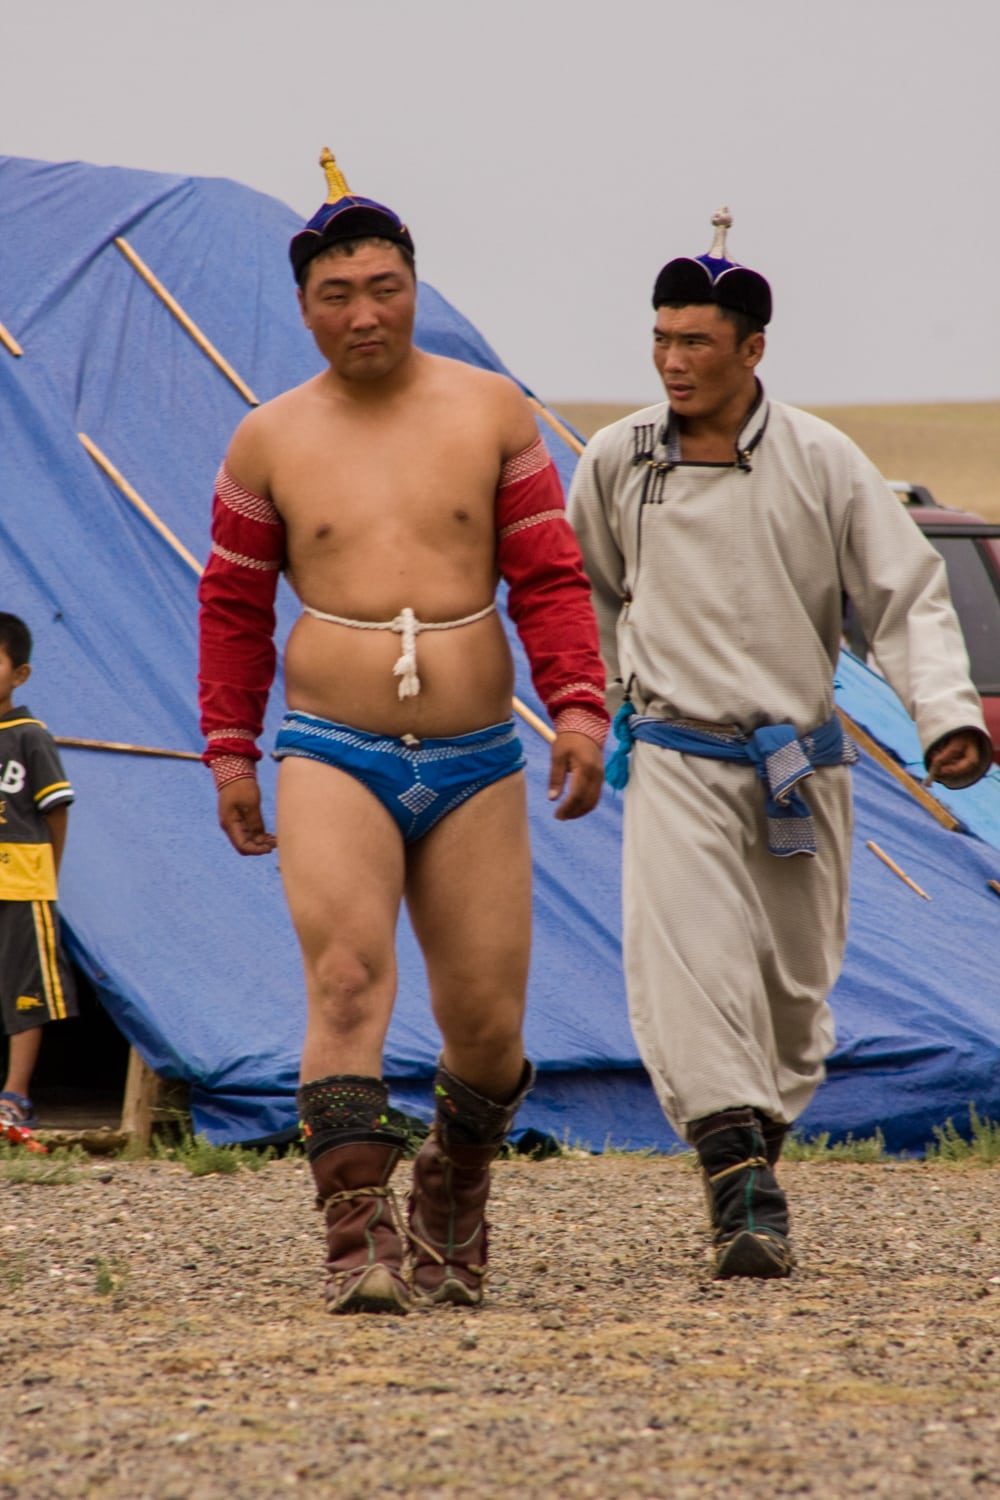 mongolia wrestling clothes